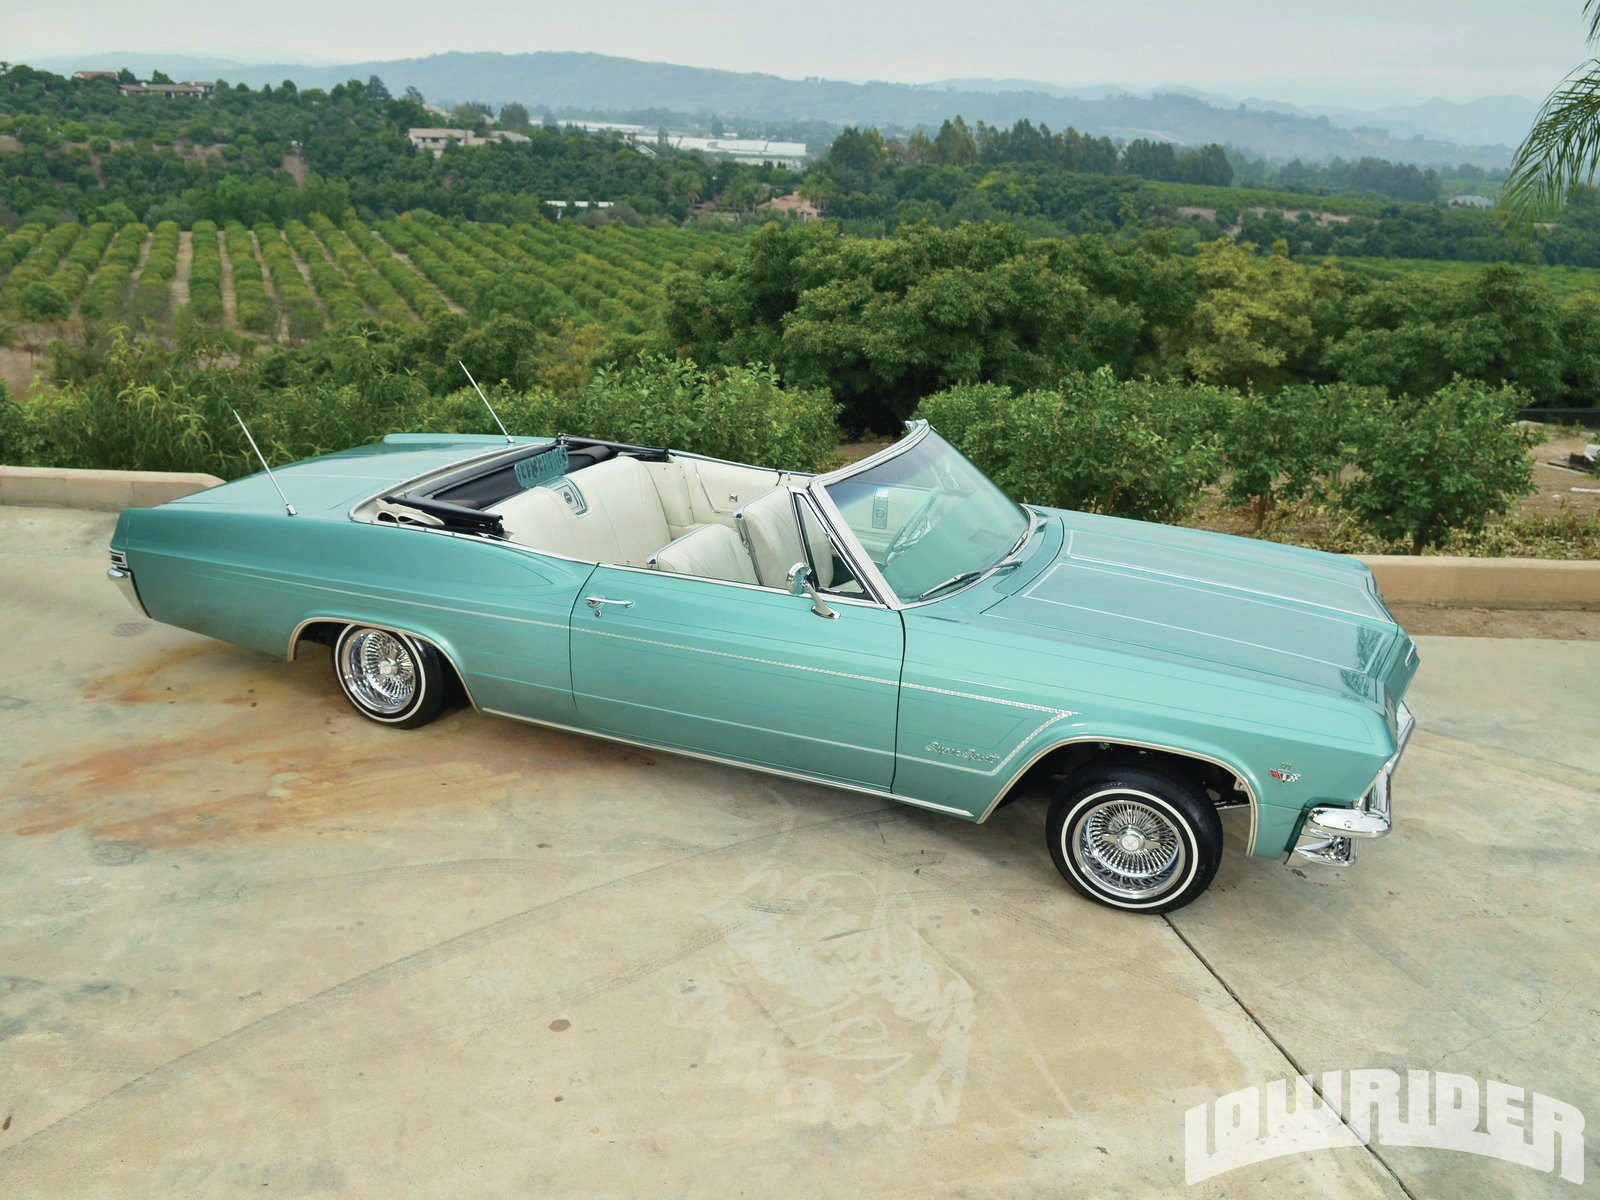 02-1965-chevrolet-impala-SS-convertible-side-view1